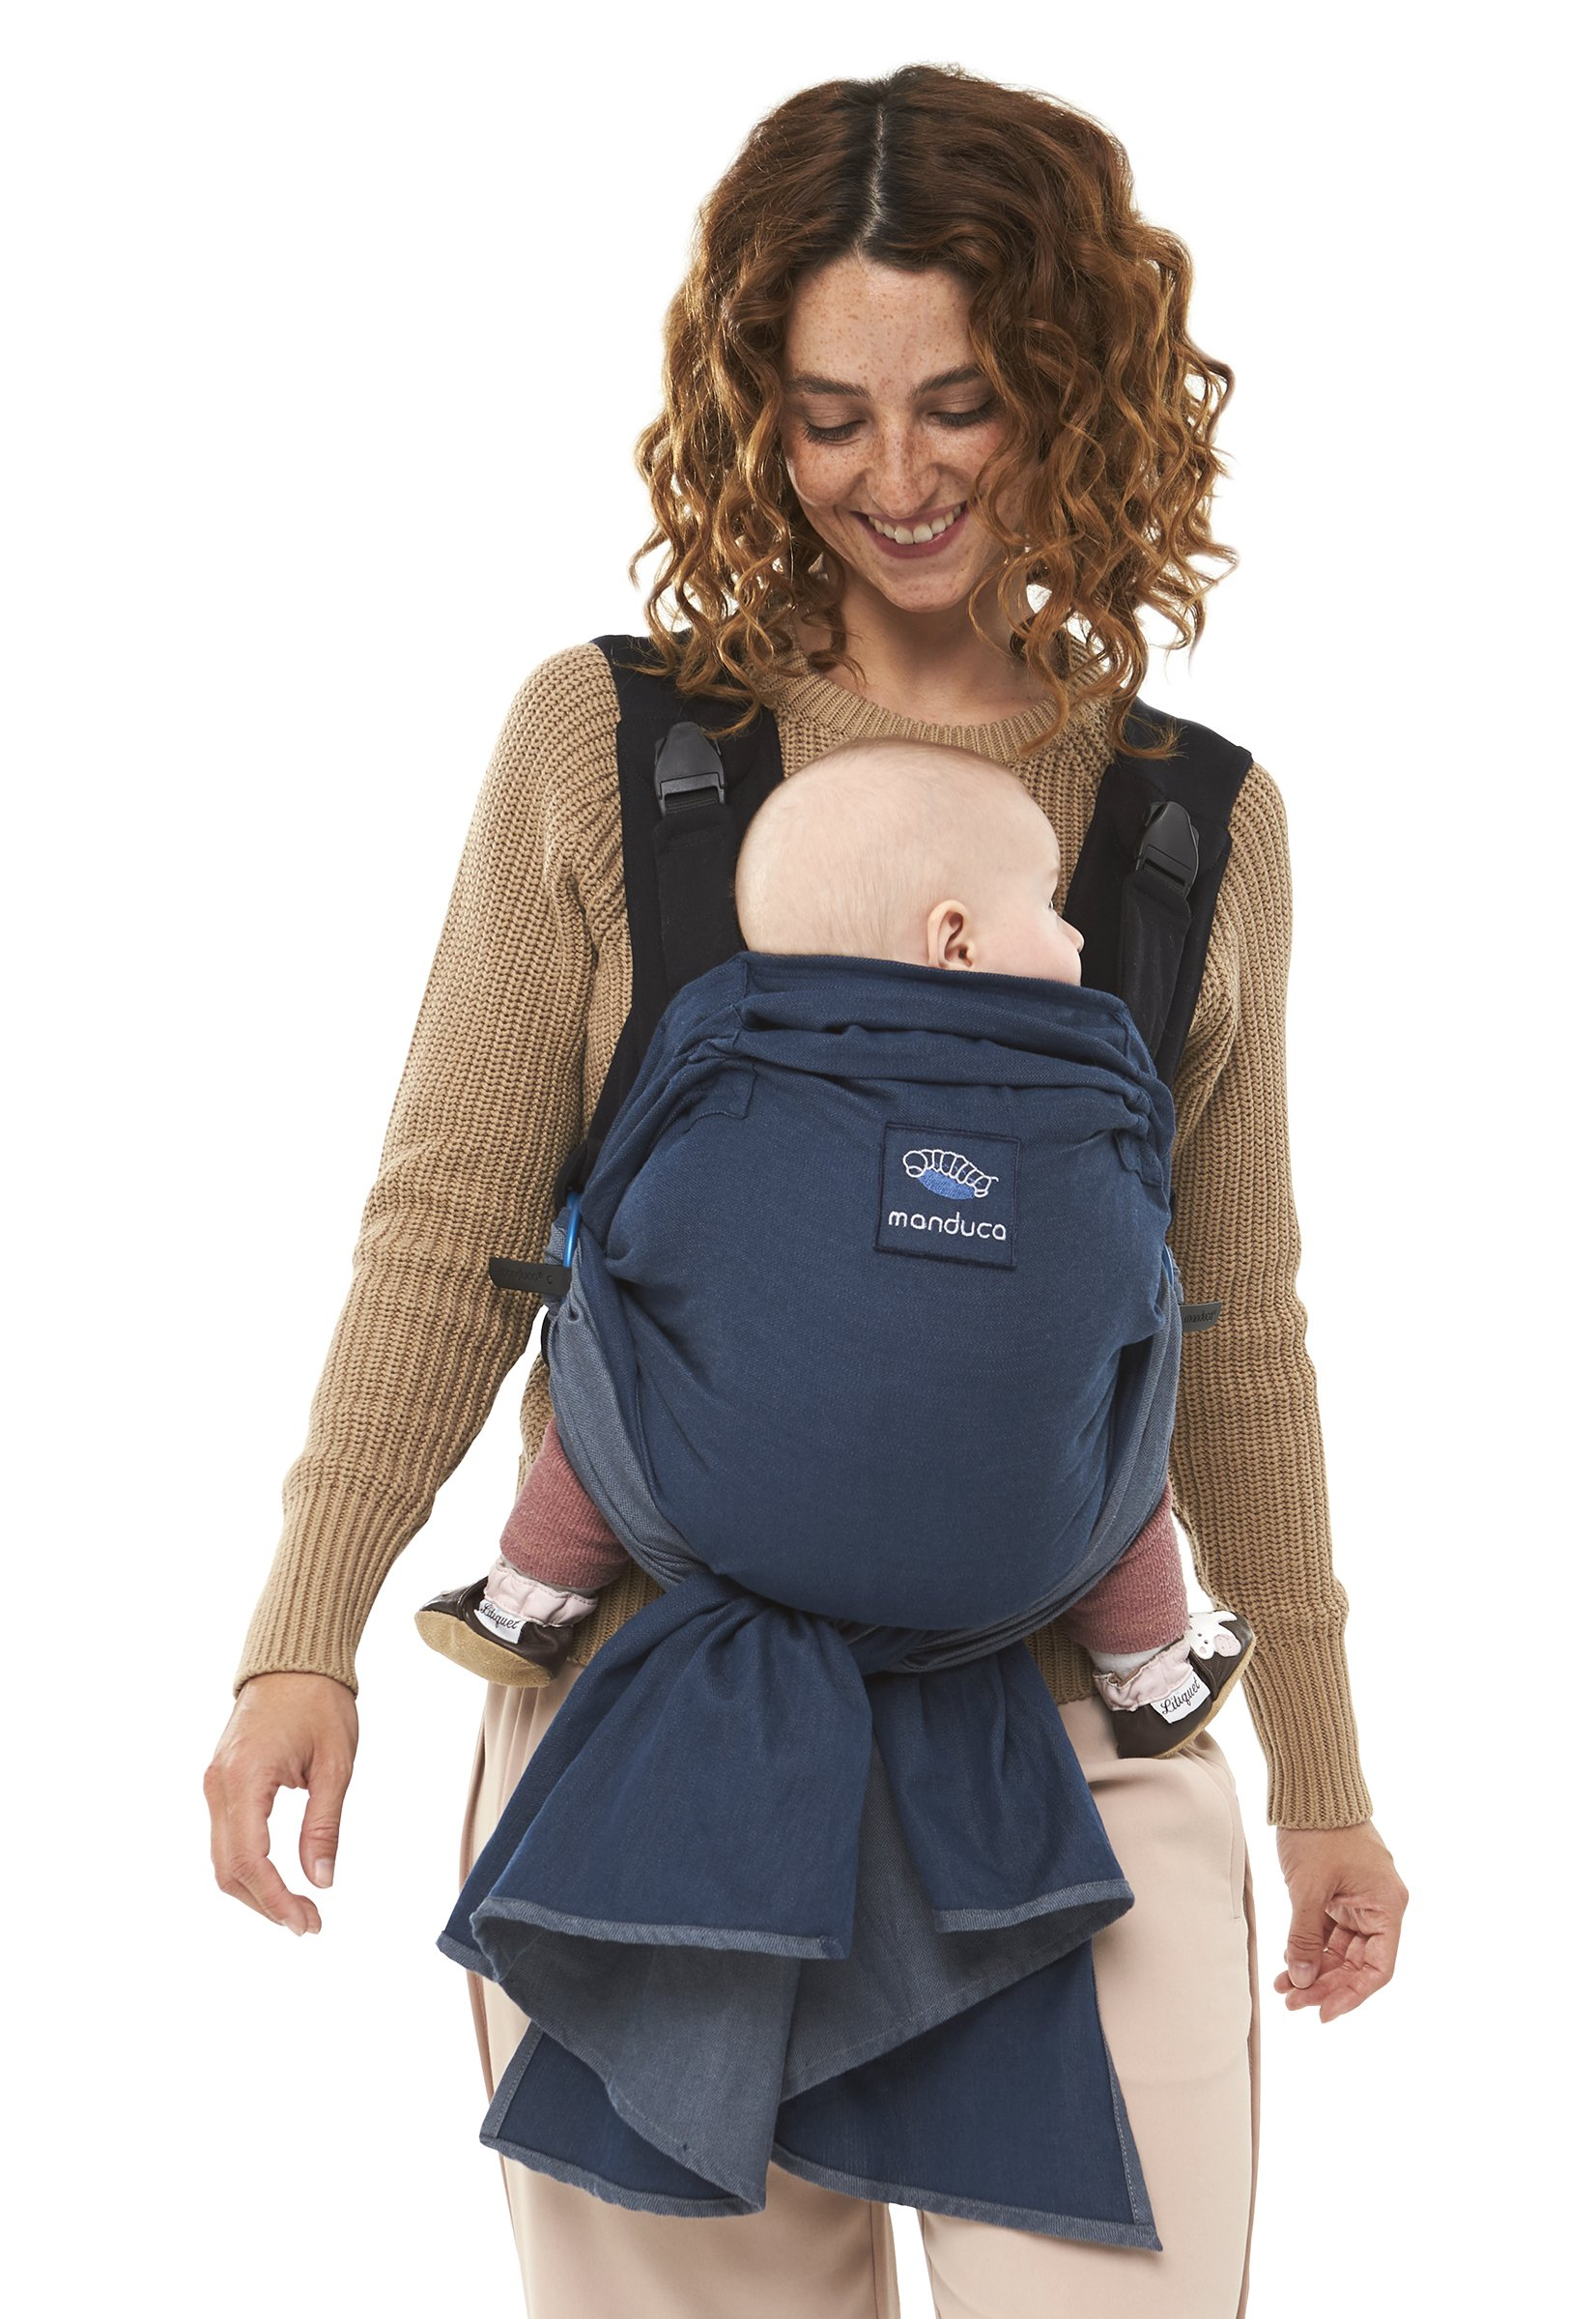 manduca Duo - Hybrid of Baby Carrier and Sling, Innovative Click &Tie System, Baby Slip-Through-Protection, Removable Hip Belt, Organic Cotton and Mesh, from Birth to 15kg (Blue) Manduca Optimized as front carrier, with slip-through protection (secure fit for your baby), supports the M position, for newborns from birth to infants up to 15 kg Especially popular with first-time parents who find it difficult to choose between a sling and a comfort carrier with buckles. Easy to use, illustrated instructions Detachable hip belt, which is only zipped on when needed (up to 140cm circumference without belt extension). Ideal for mothers with sensitive belly and after cesarean section, good weight distribution, comfortable on the shoulders. 3